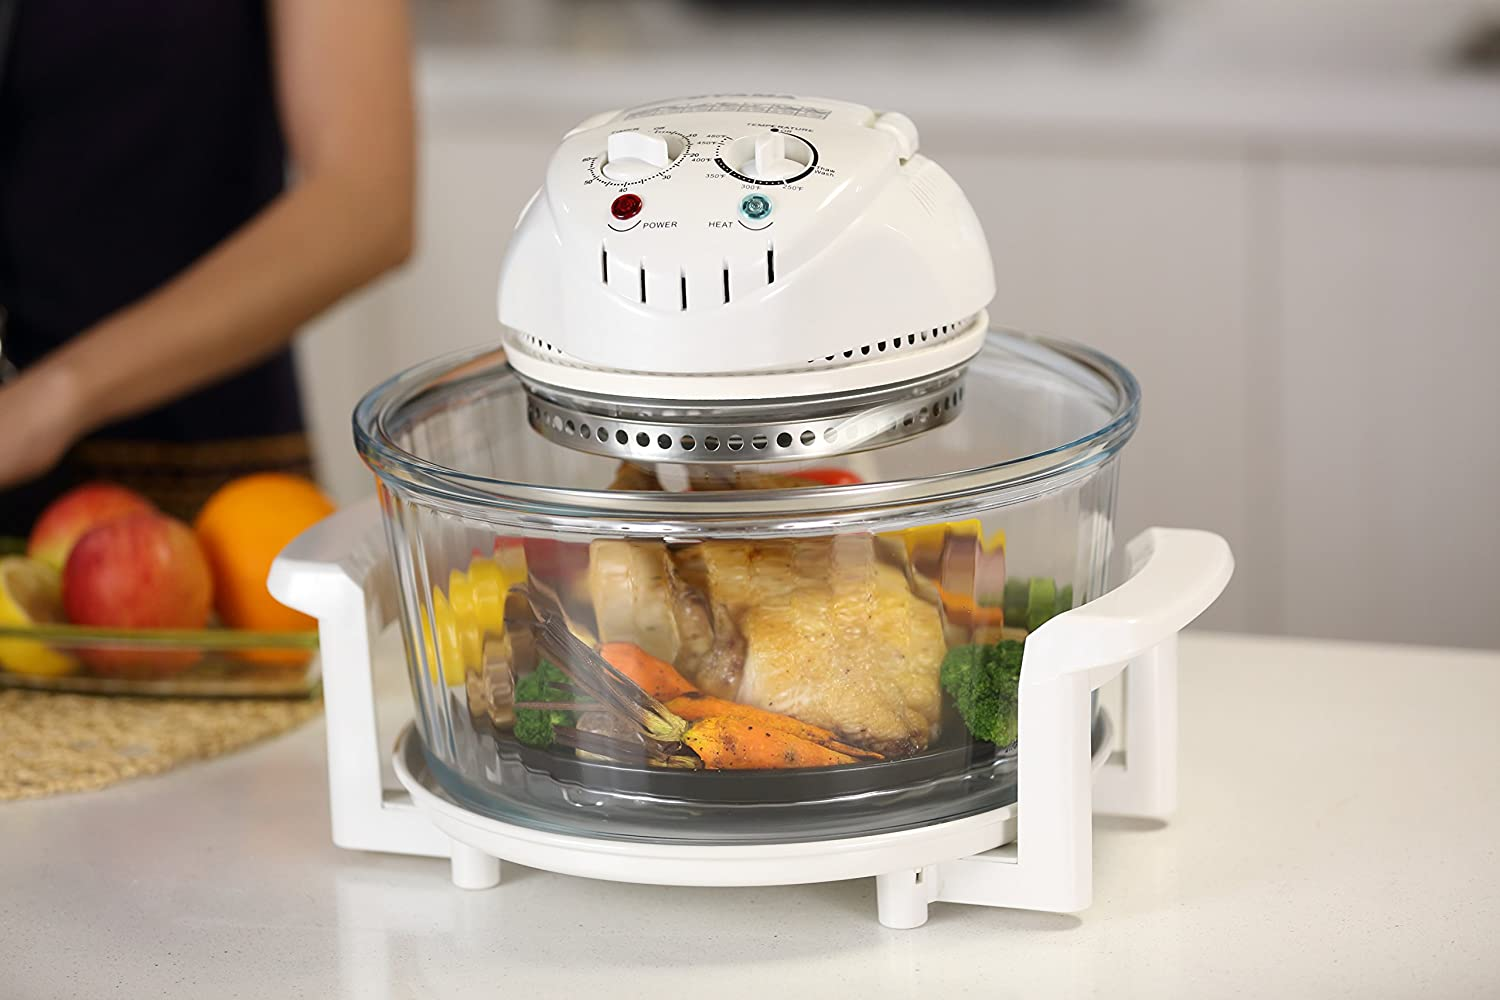 If you want to try out a halogen oven, we picked all of the best ones and reviewed them in this list. Be sure to keep reading if you want to learn more!